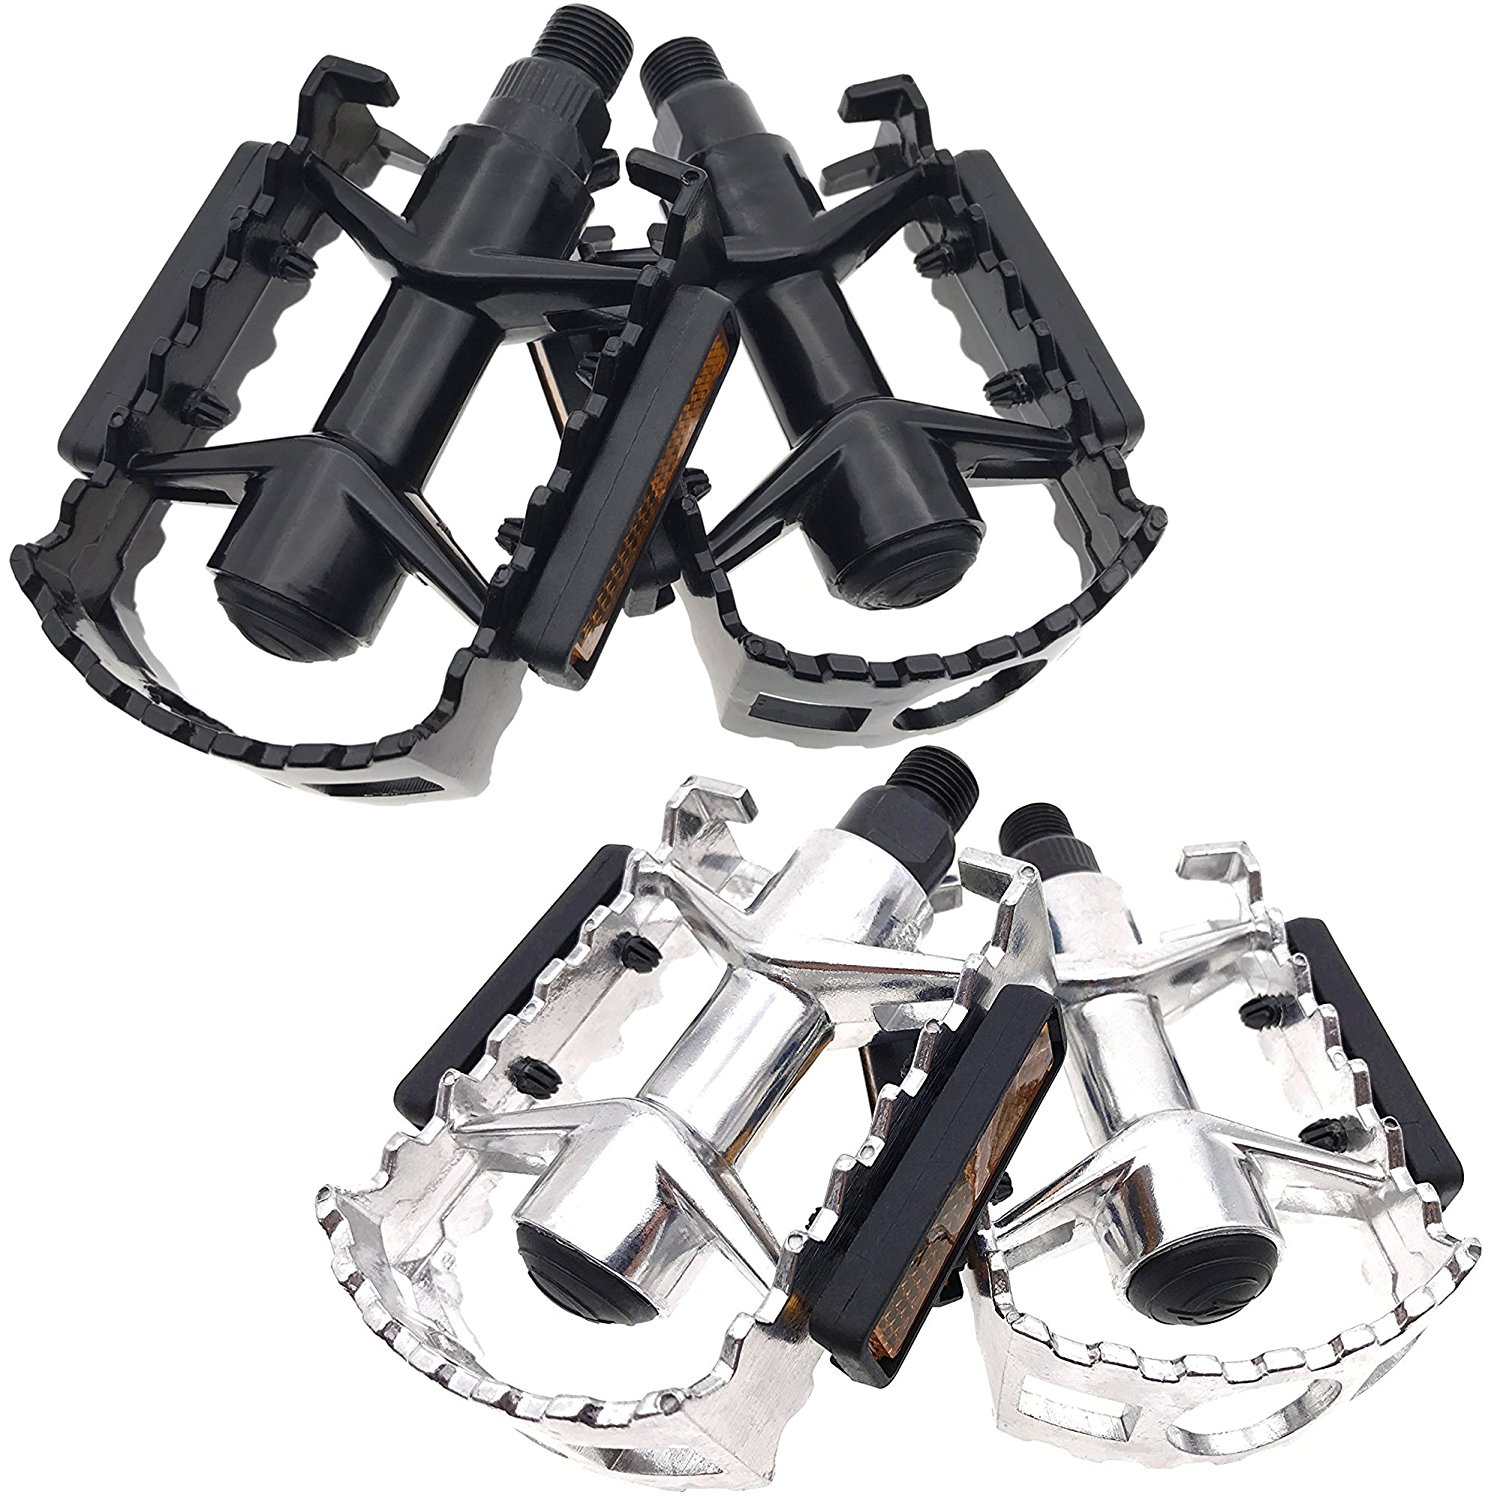 """ARTHEALTH Bicycle Pedals Bike Pedals Aluminum Alloy 9/16"""" Inch Black/Silver High Performance Pedals for Bikes Mountain Bikes Road Bicycles Platform Pedals MTB Pedals"""